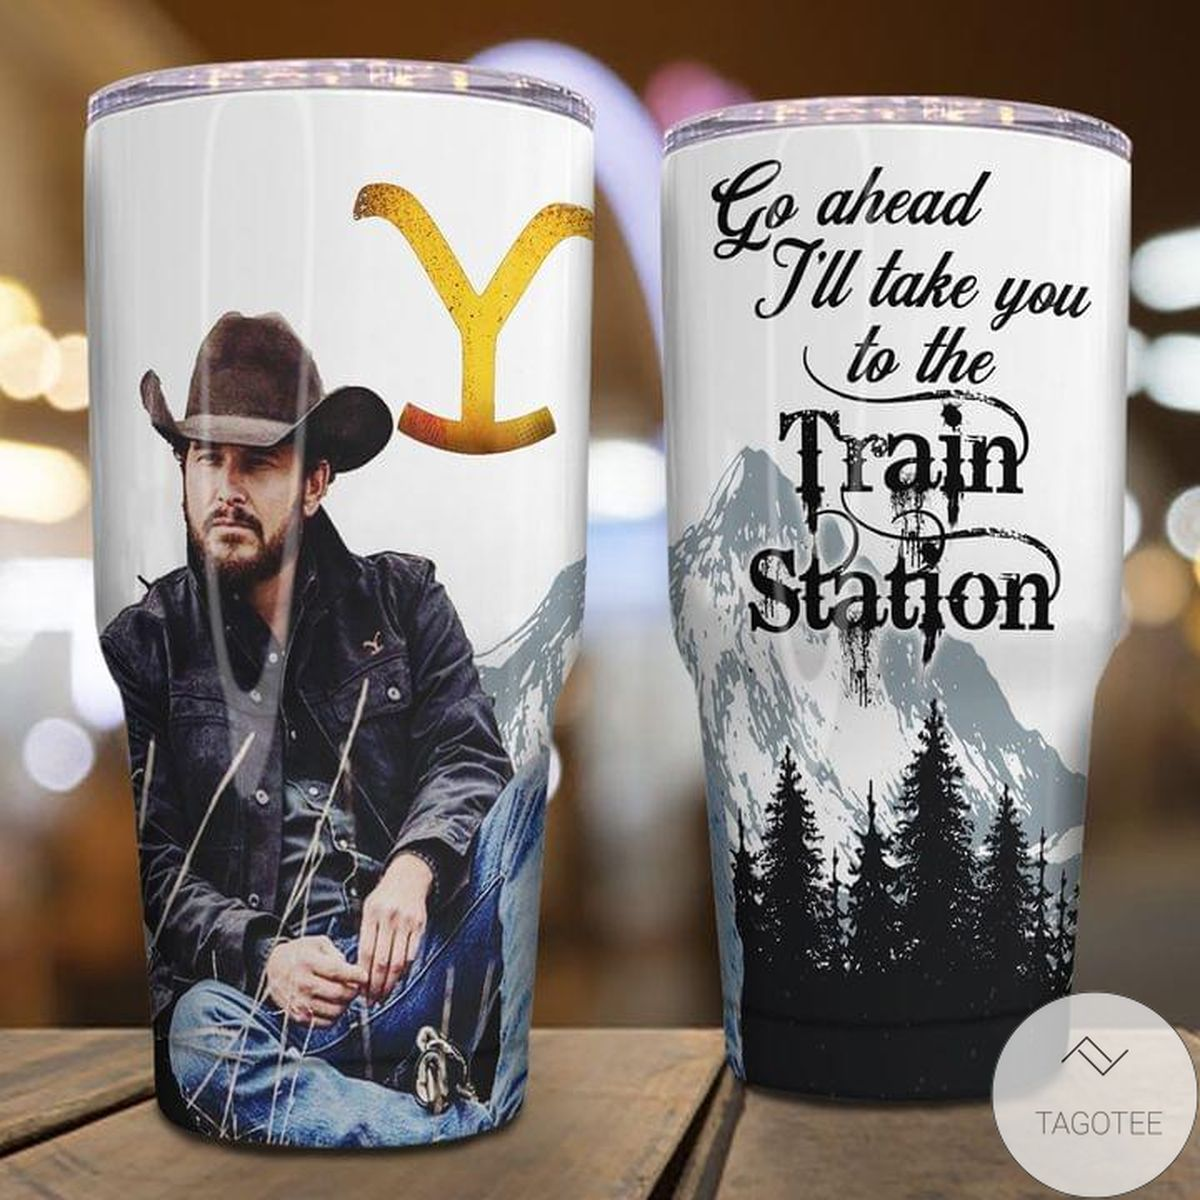 Cowboy Go Ahead Till I Take You To The Train Station Tumbler